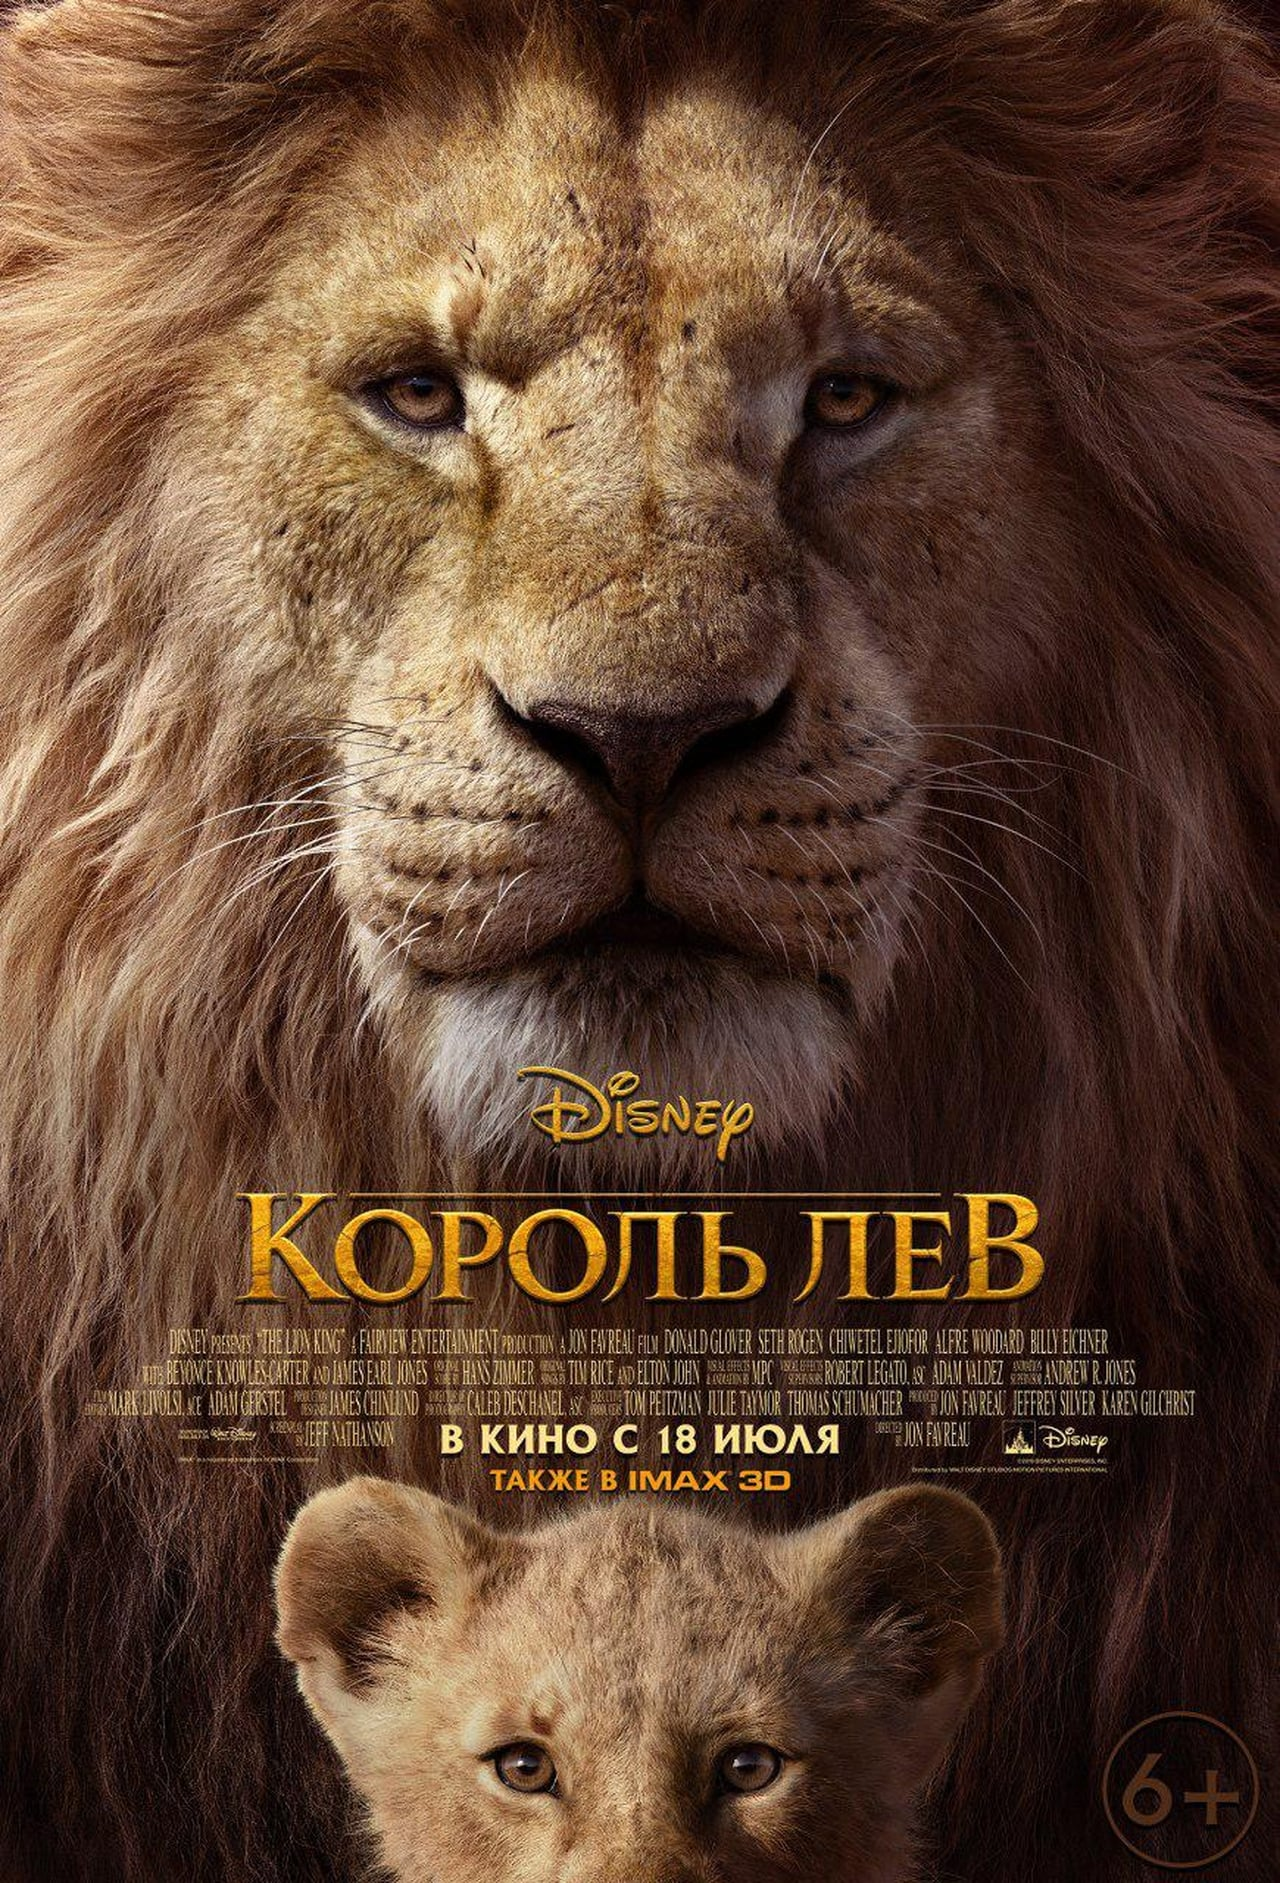 Watch Full The Lion King (2019) Summary Movie at streamonline.playnowstore.com